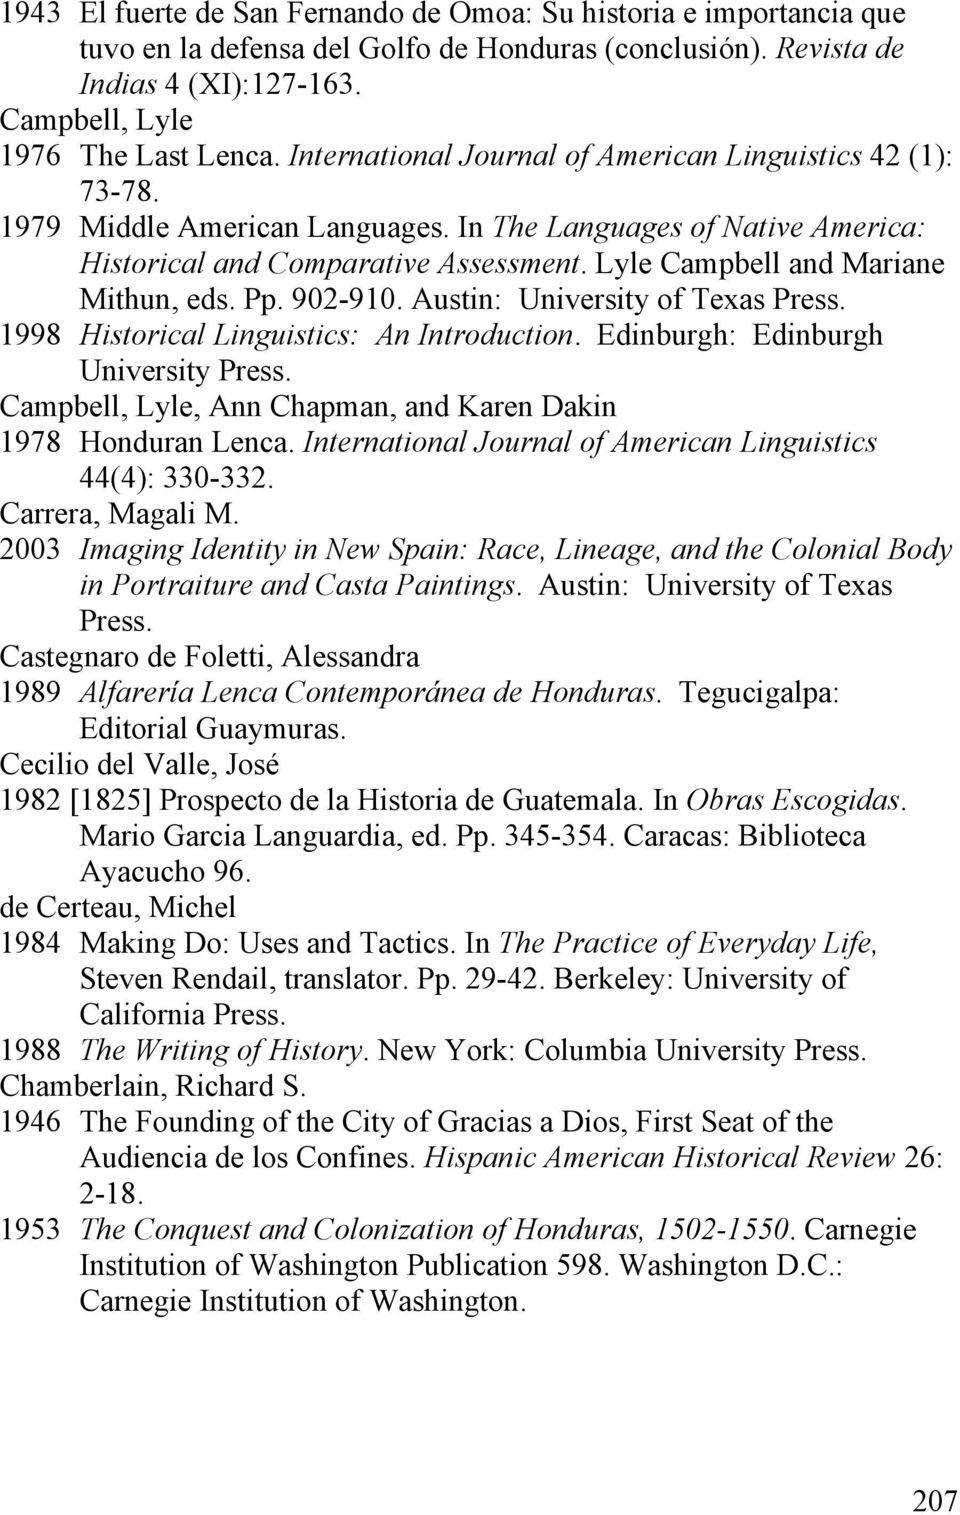 Lyle Campbell and Mariane Mithun, eds. Pp. 902-910. Austin: University of Texas Press. 1998 Historical Linguistics: An Introduction. Edinburgh: Edinburgh University Press.